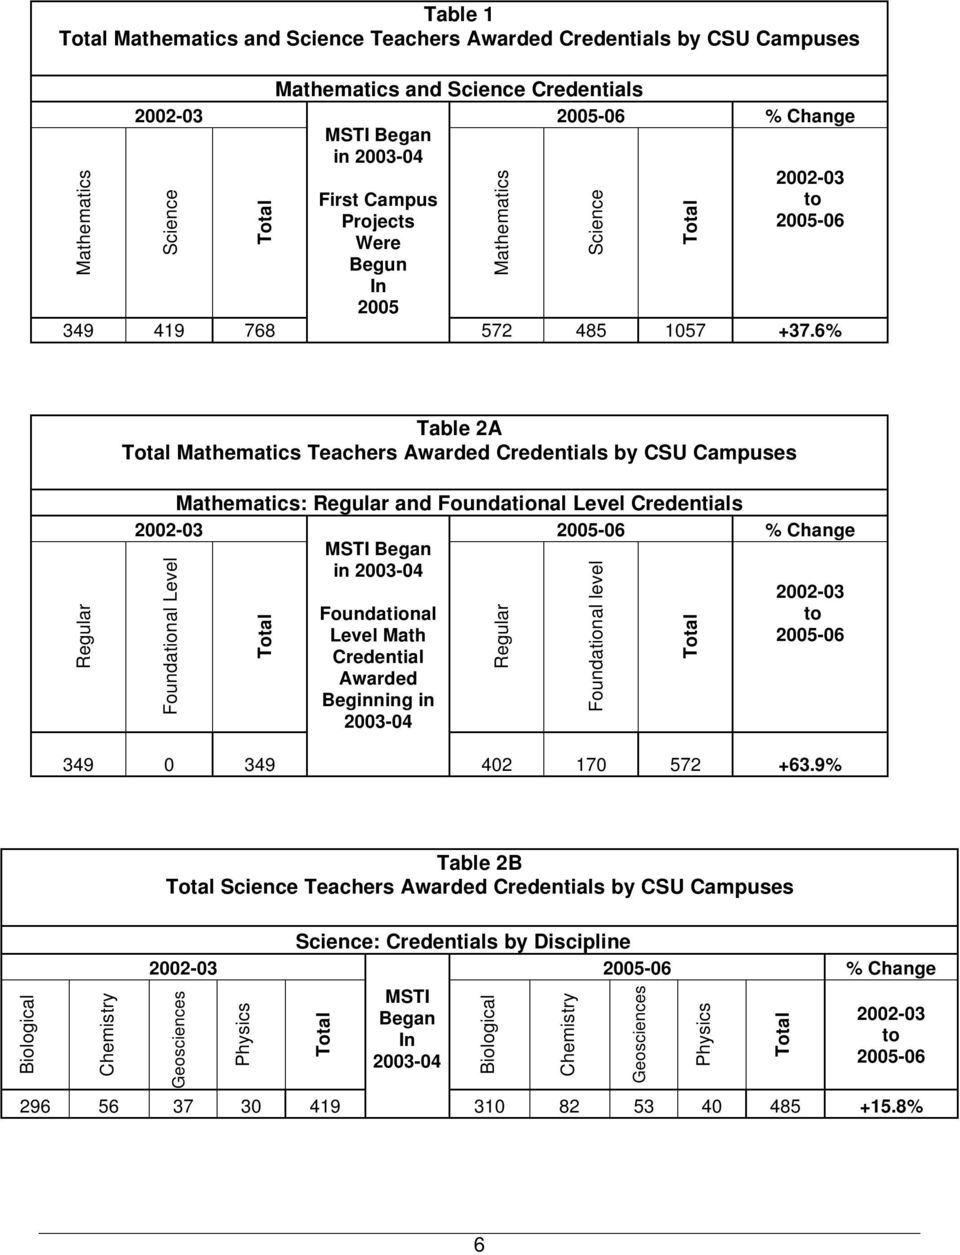 6% Table 2A Mathematics Teachers Awarded Credentials by CSU Campuses Regular Mathematics: Regular and Foundational Level Credentials 2002-03 2005-06 % Change MSTI Began in 2003-04 Foundational Level